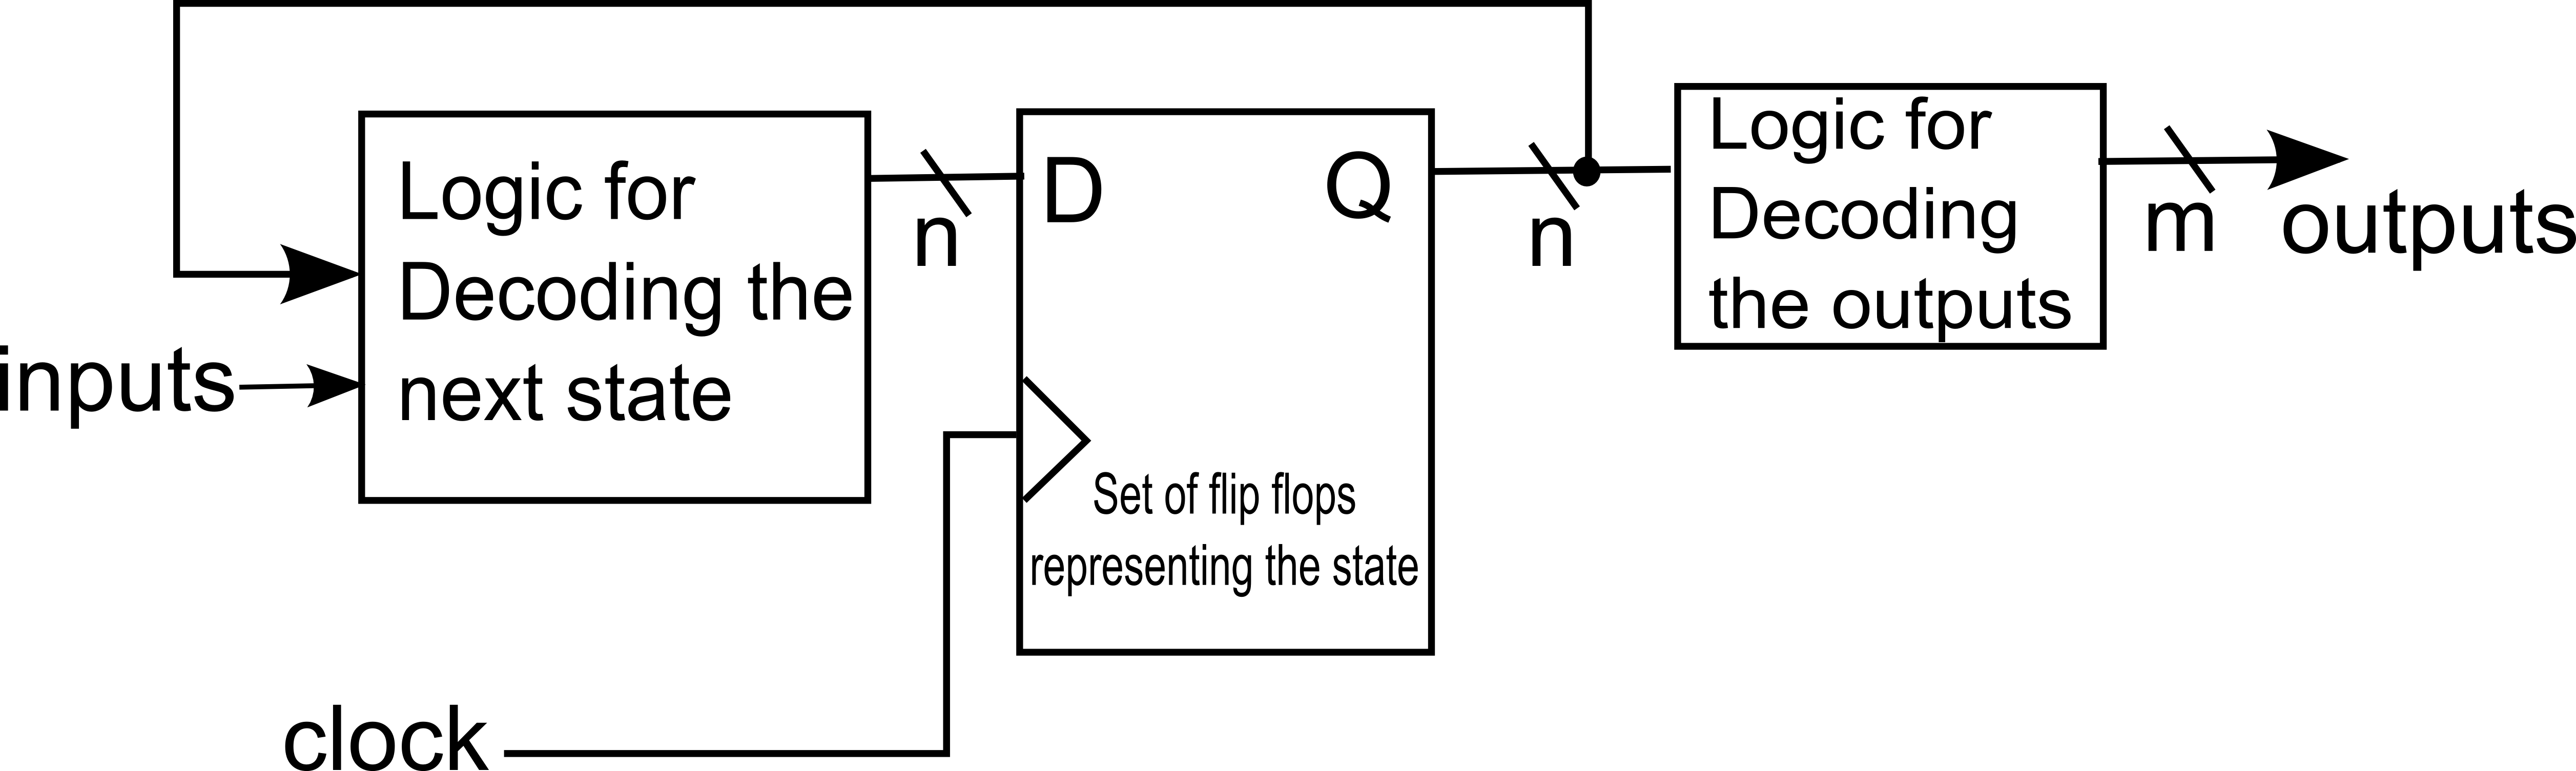 state machine diagram in block three way switch circuit implementing a finite vhdl representation of logic created for